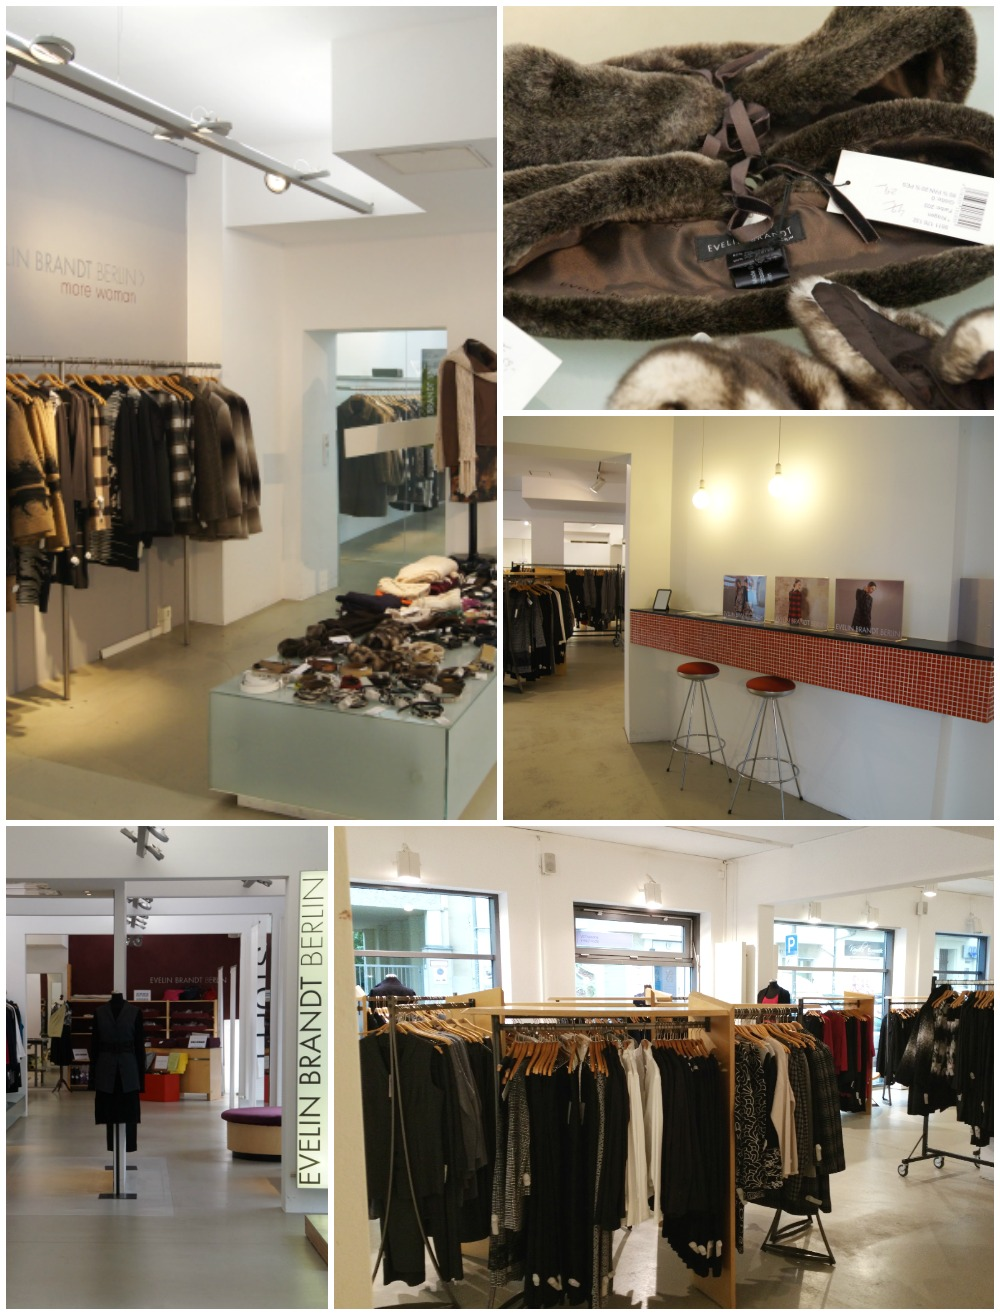 outlet-evelyn-brandt